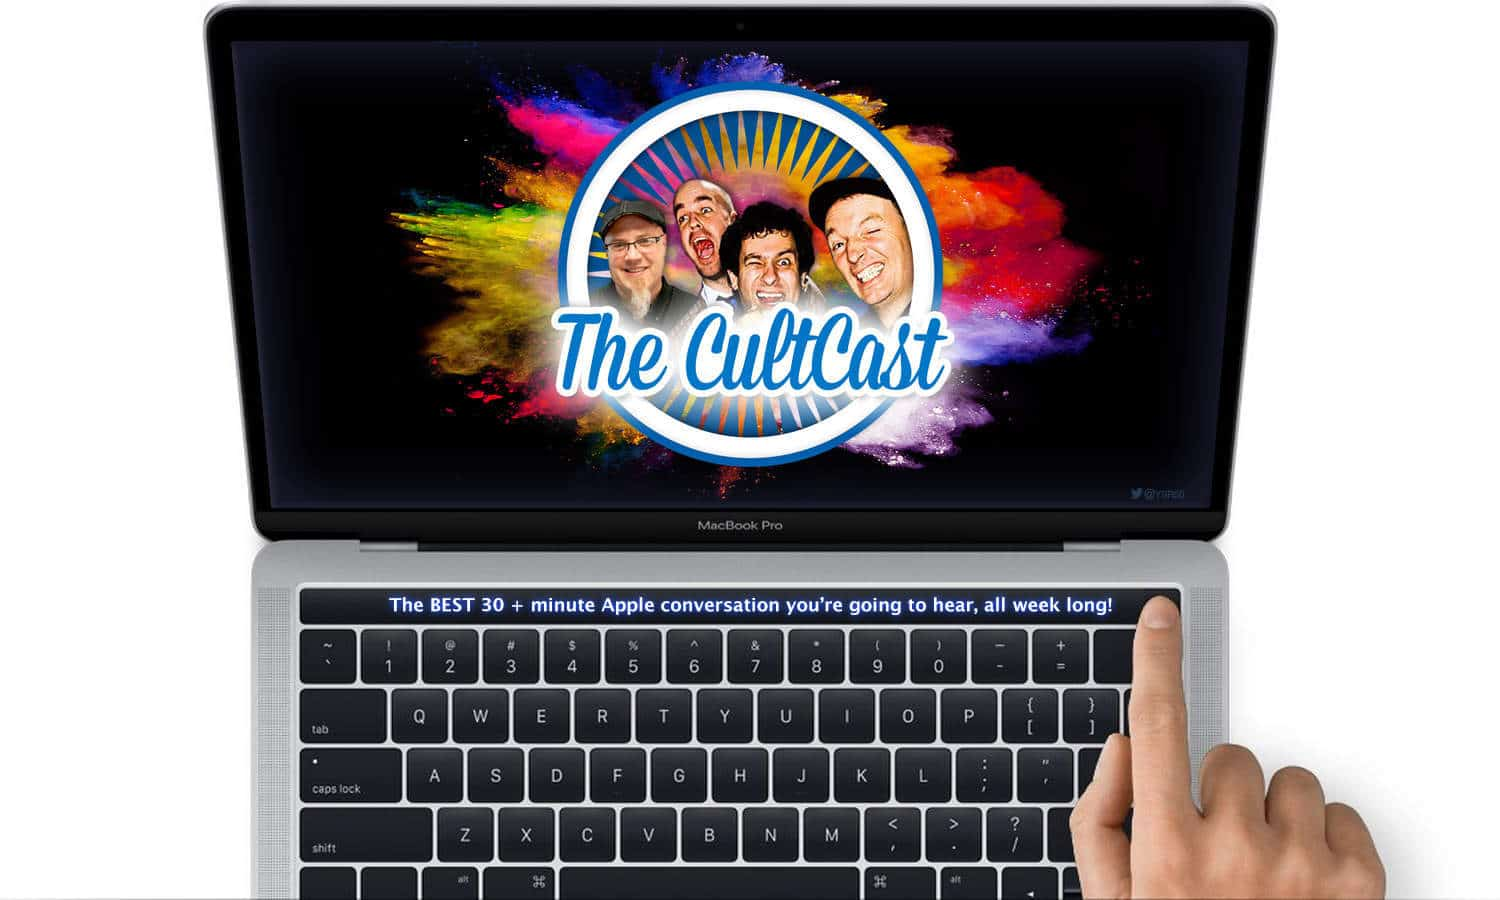 Is Apple Prepping Big Mac Updates for an October Event?  Catch Our Discussion on the CultCast